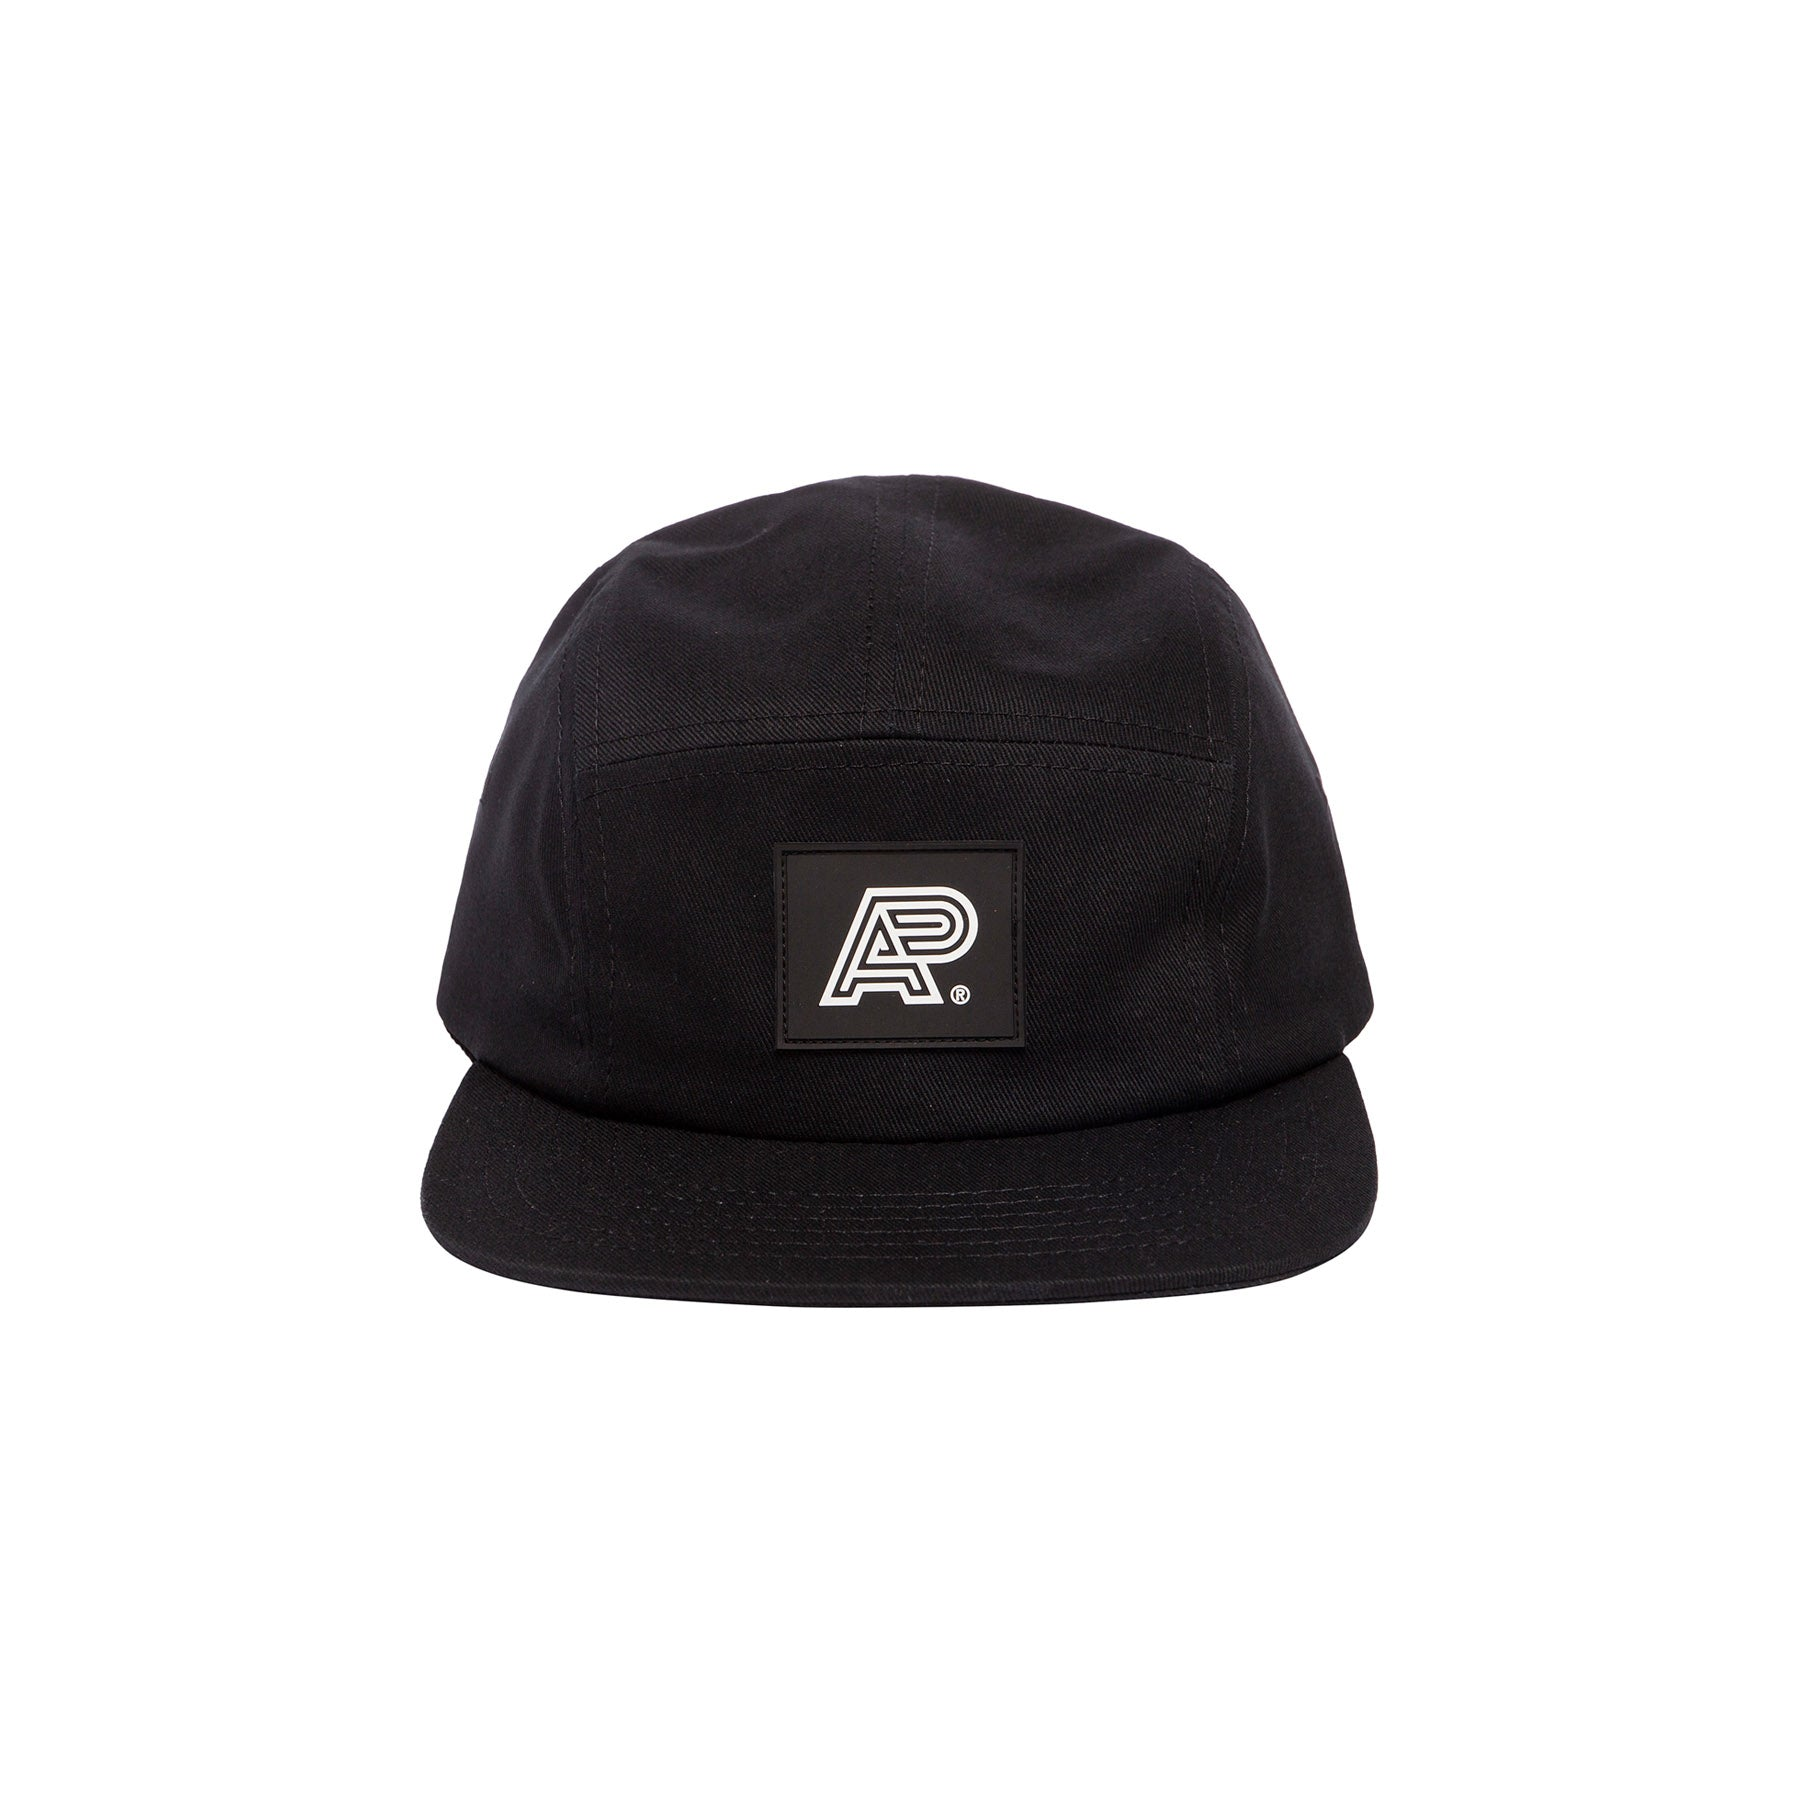 AP 5 panel twill camp cap